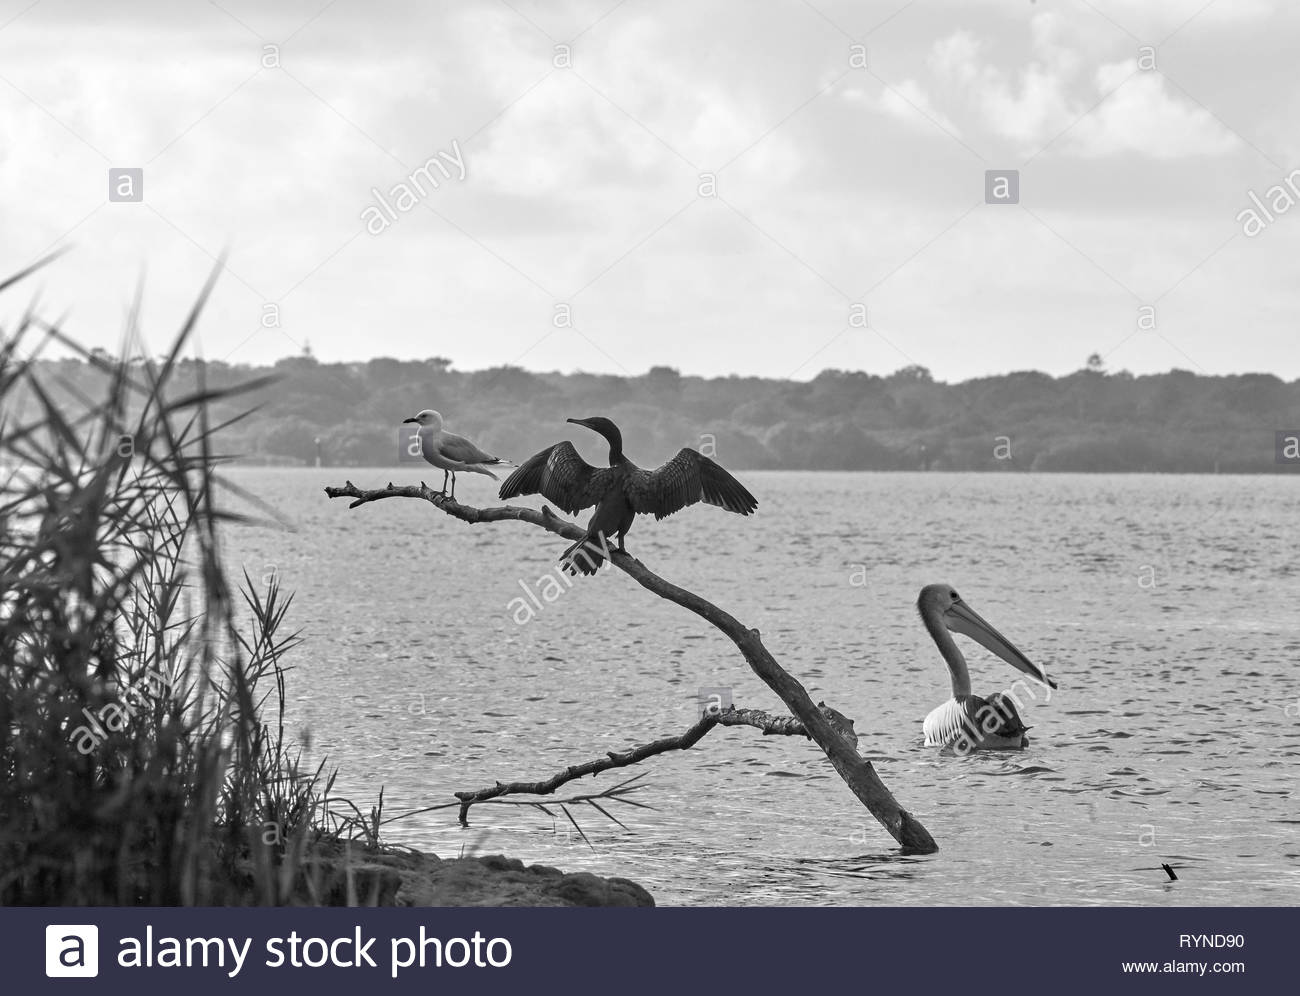 A black and white image of three birds - a Little Black Cormorant and Seagull, perched on a large branch in the water, with a Pelican paddling nearby. - Stock Image